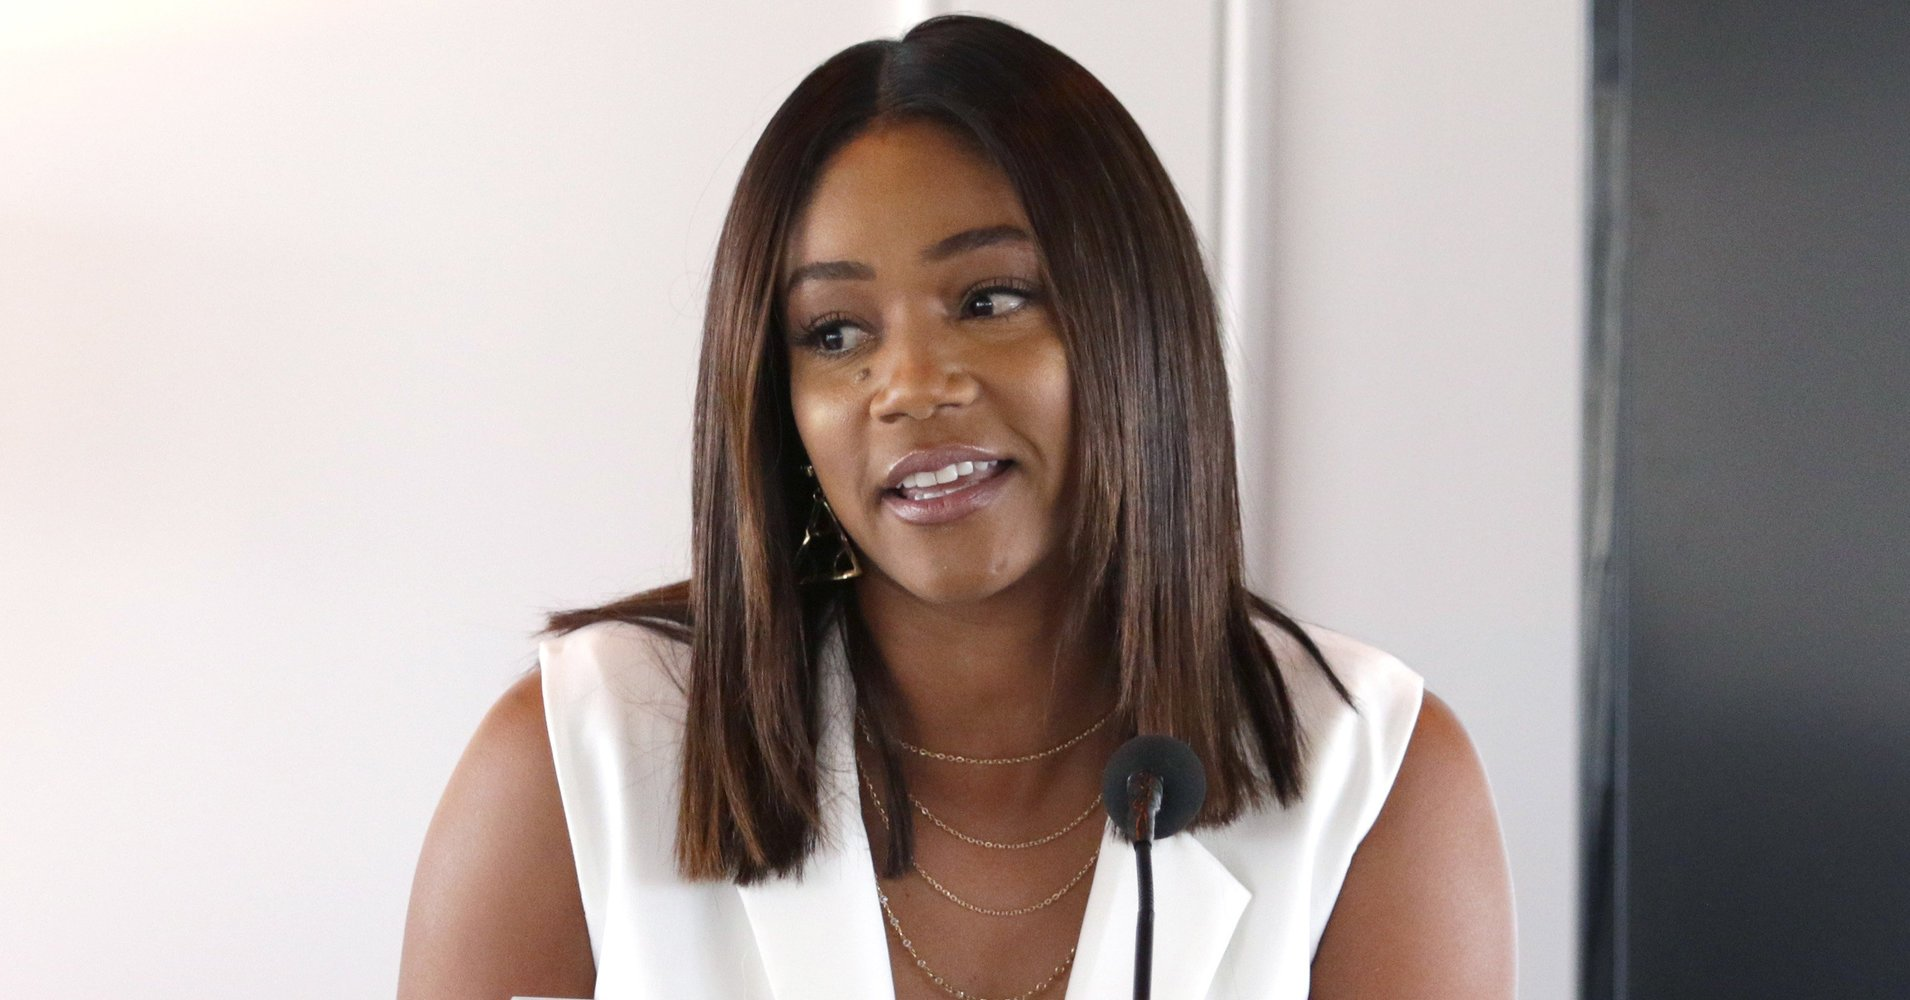 Tiffany Haddish on sexual harassment in comedy: 'It was constant defending and battling' https://t.co/VZE0doUqTh https://t.co/Q540Yn8Yk3